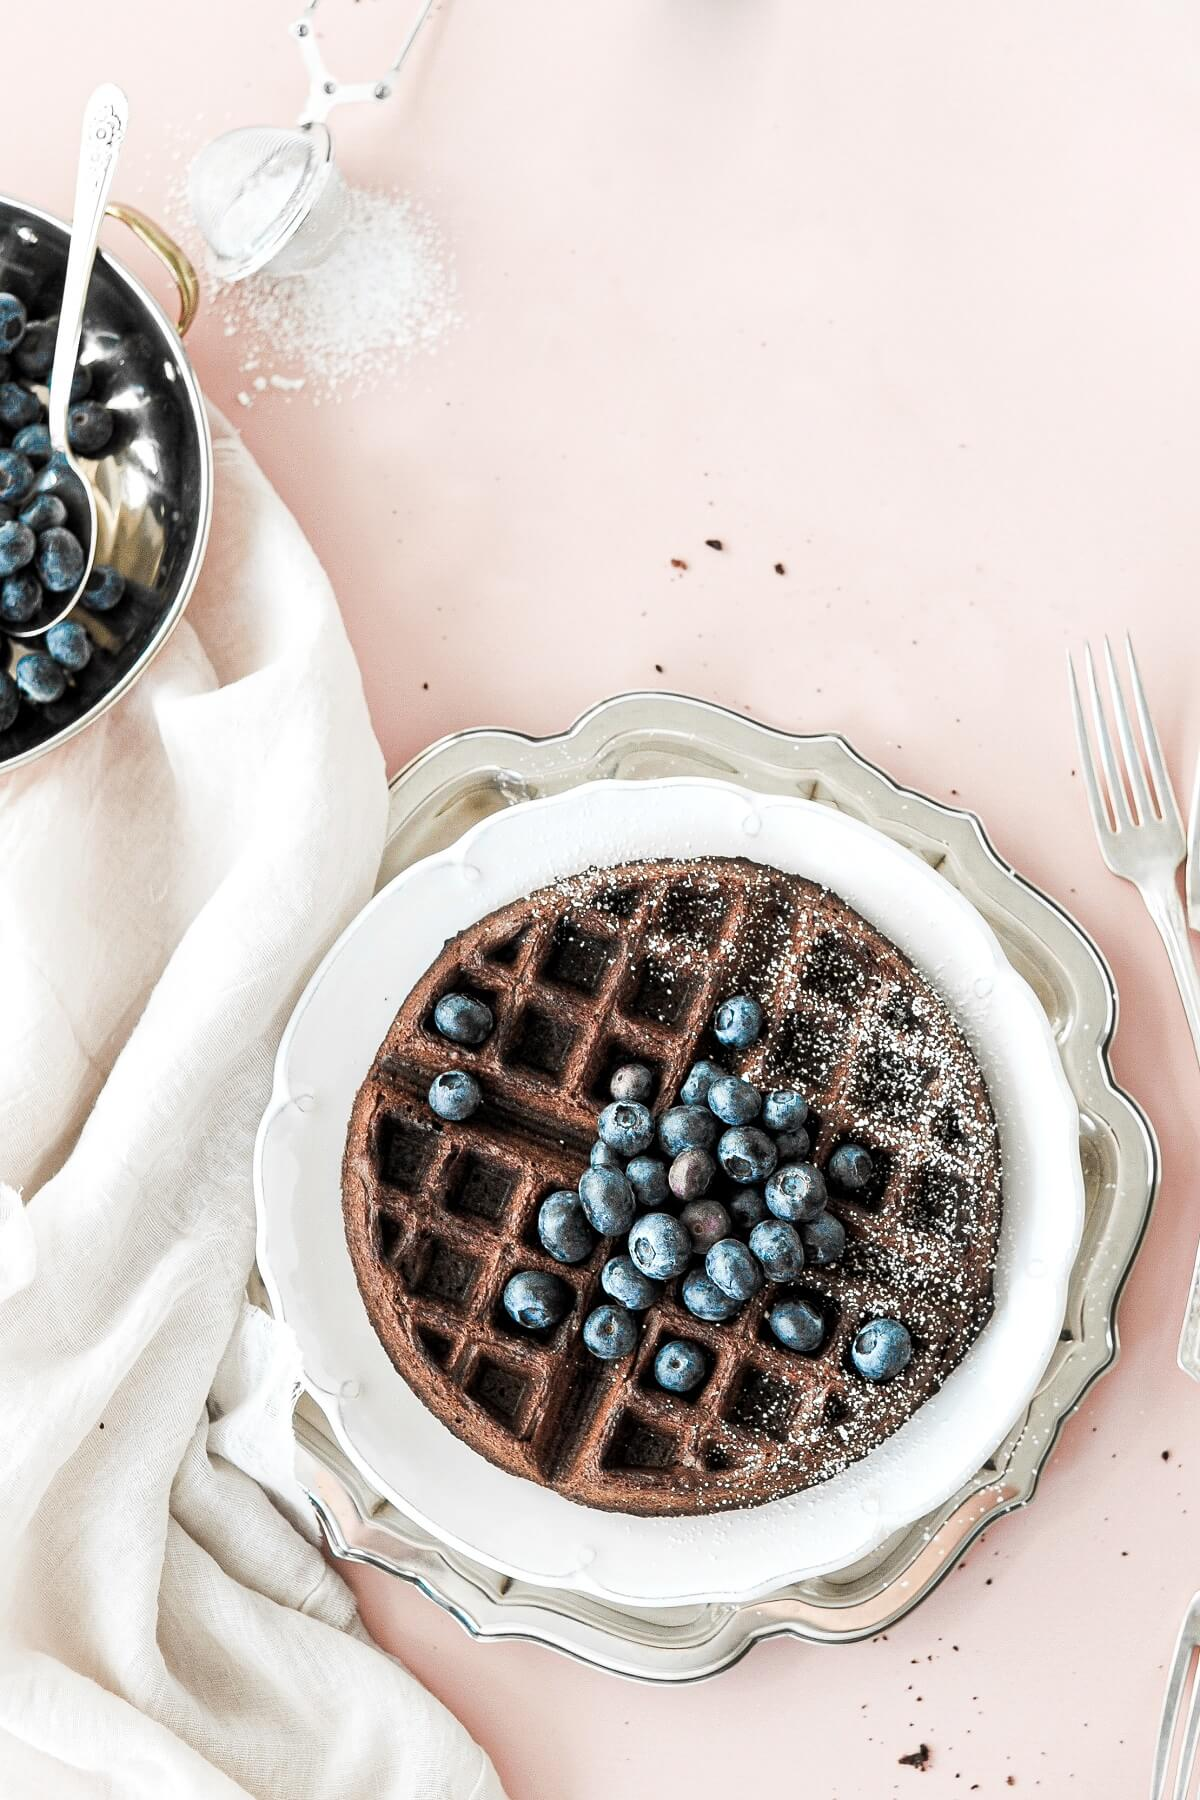 A chocolate waffle with blueberries and powdered sugar.